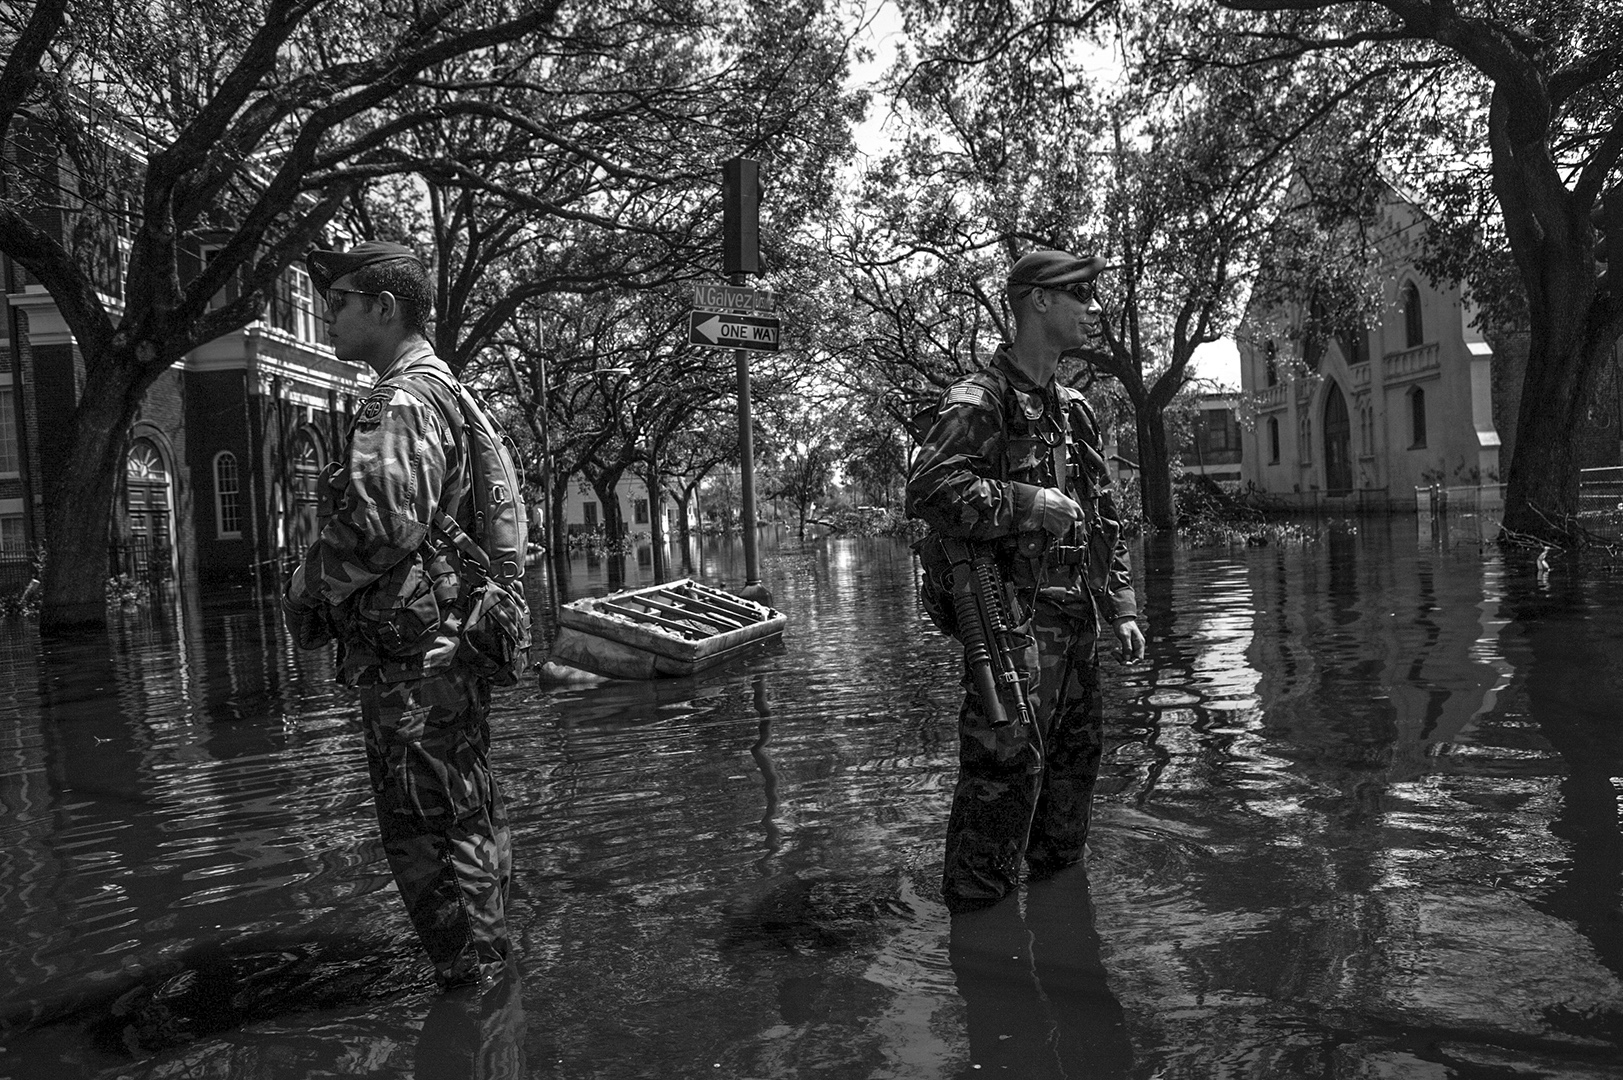 The National Guard were brought in for rescue operations and to maintain security.